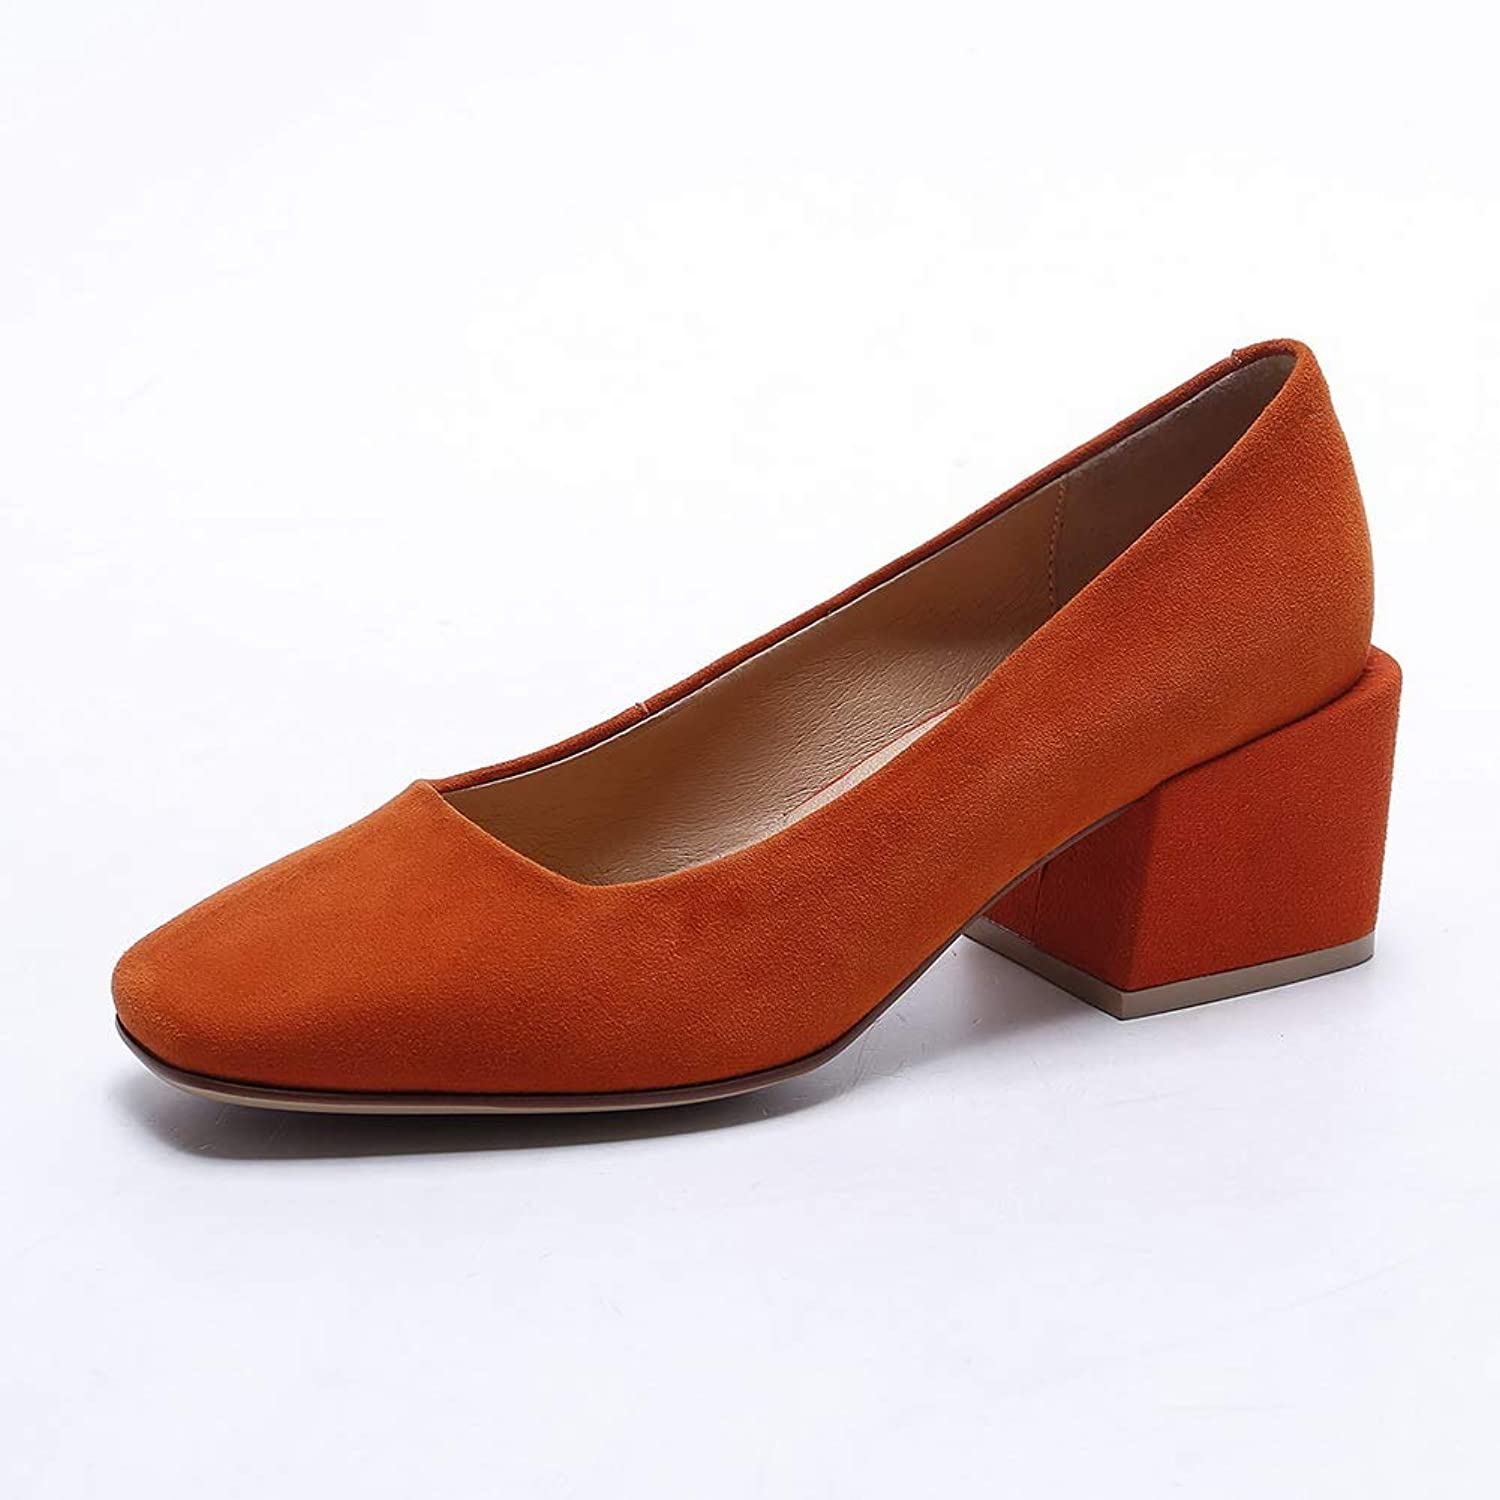 AN Womens Chunky Heels Low-Cut Uppers Imitated Suede Pumps shoes DGU00926